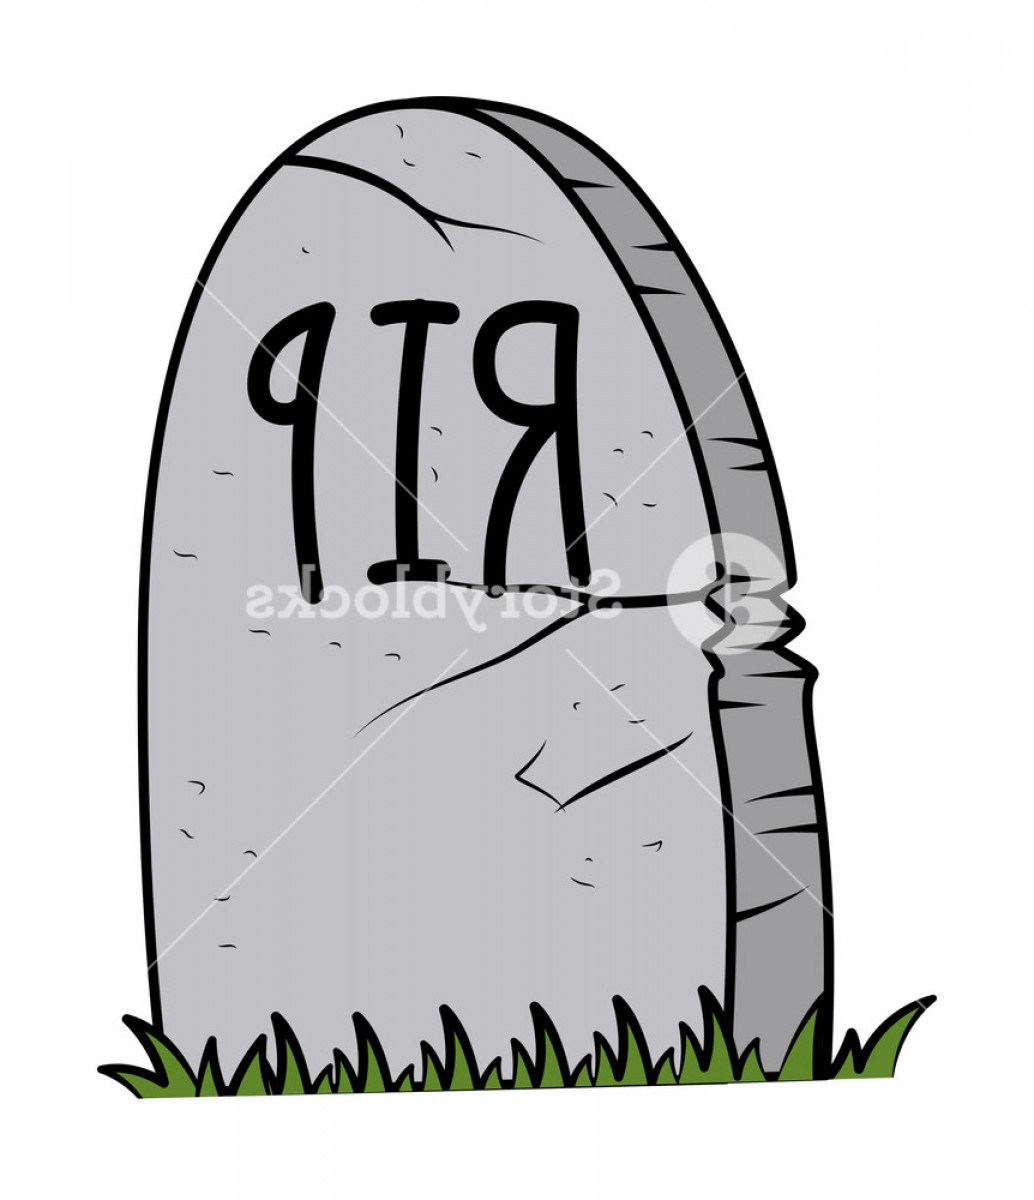 Gravestone Black And Whit Vector JPEG: Rip Grave Cartoon Halloween Vector Illustration Bqqvetuxu Jgrly